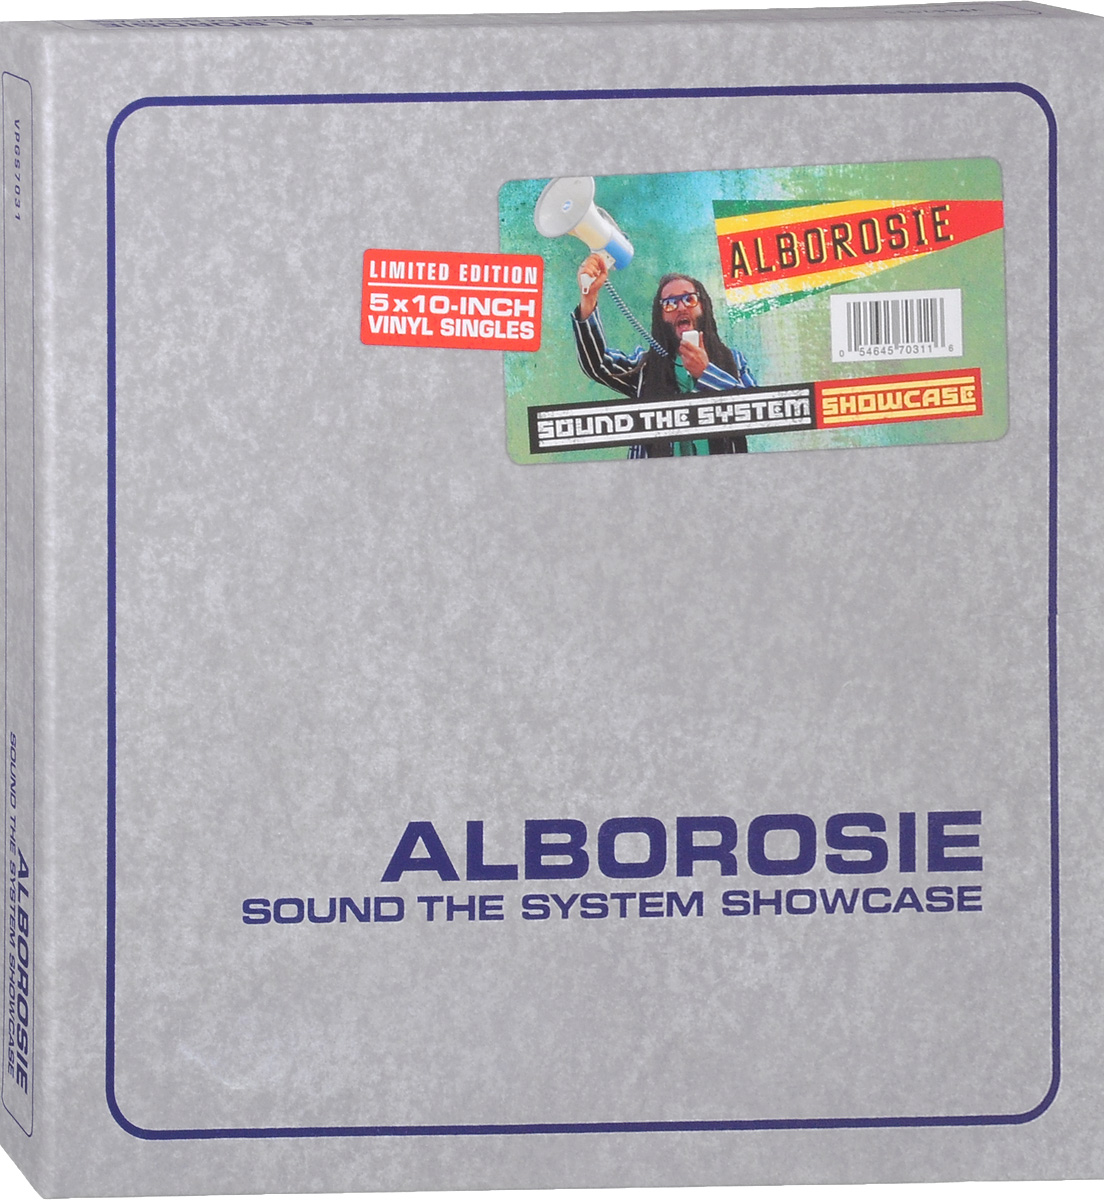 Alborosie Alborosie. Sound The System Showcase. Limited Edition (5 LP) 3 6 8 7 10 9 12